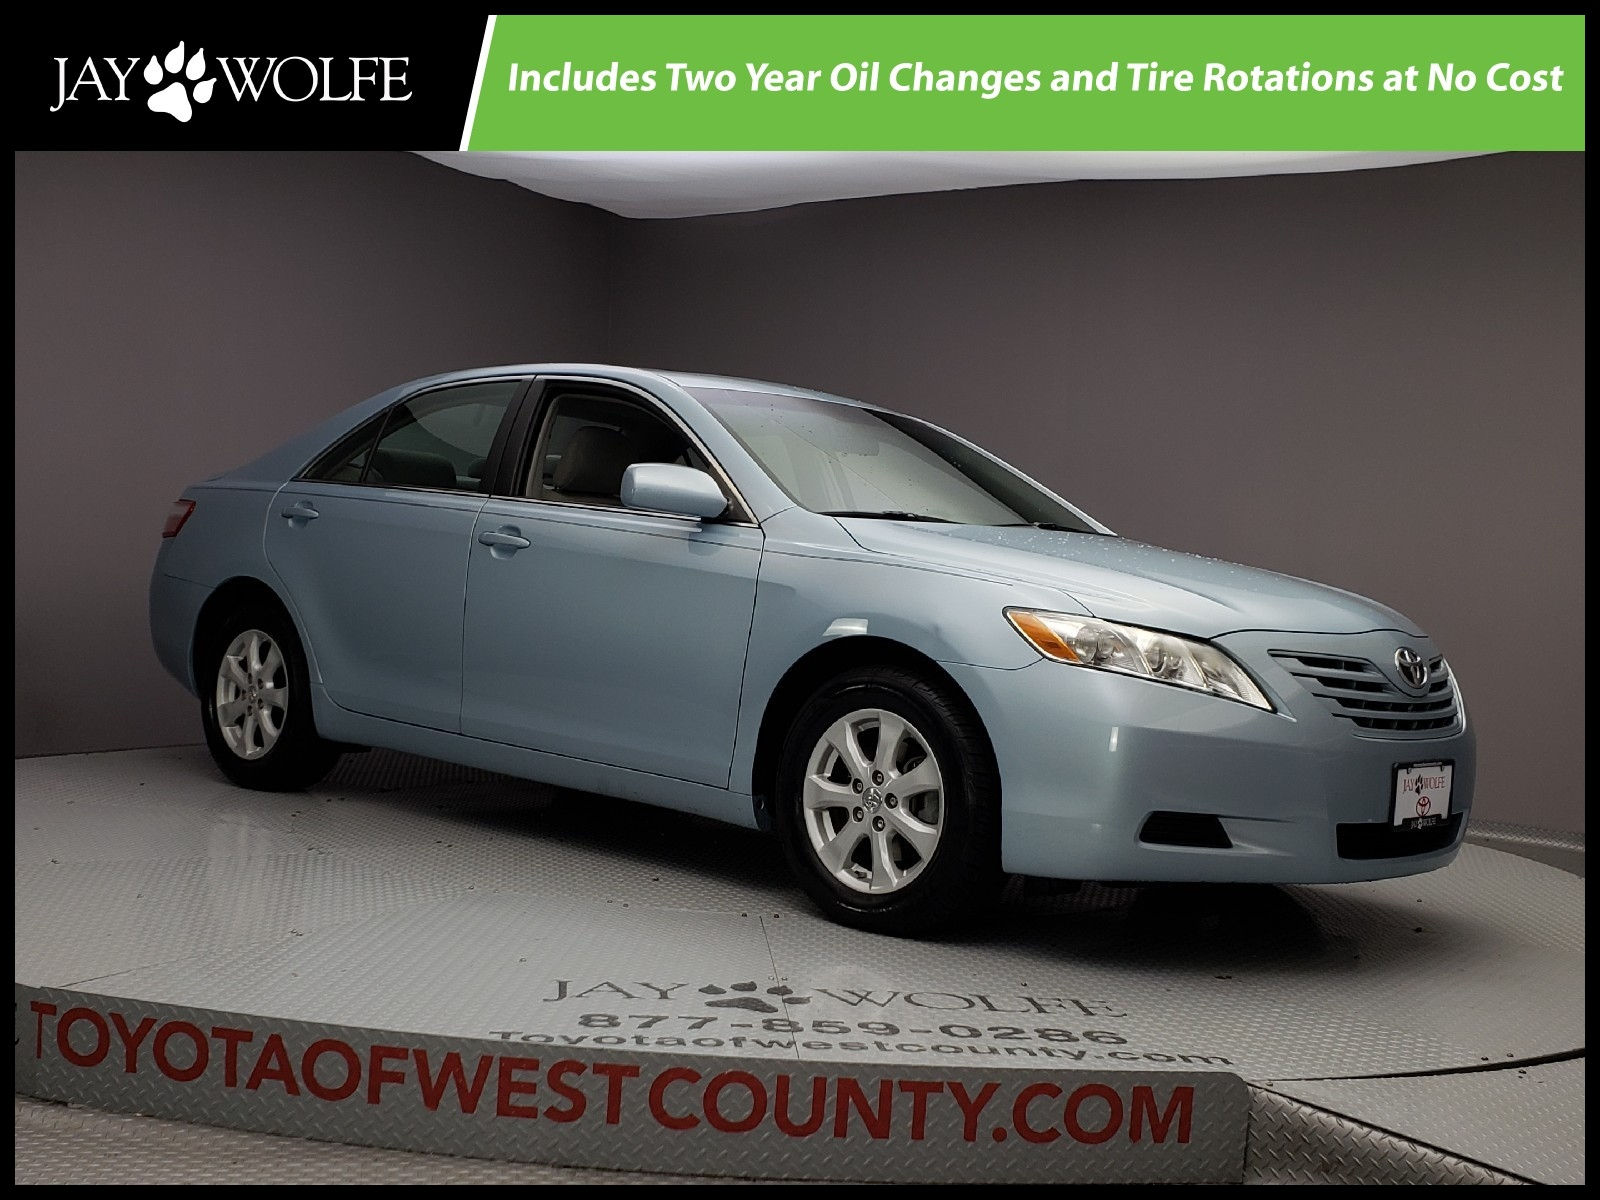 Pre Owned 2009 TOYOTA CAMRY 4DR SDN I4 AUTO LE 4 Door Sedan in Ballwin W A